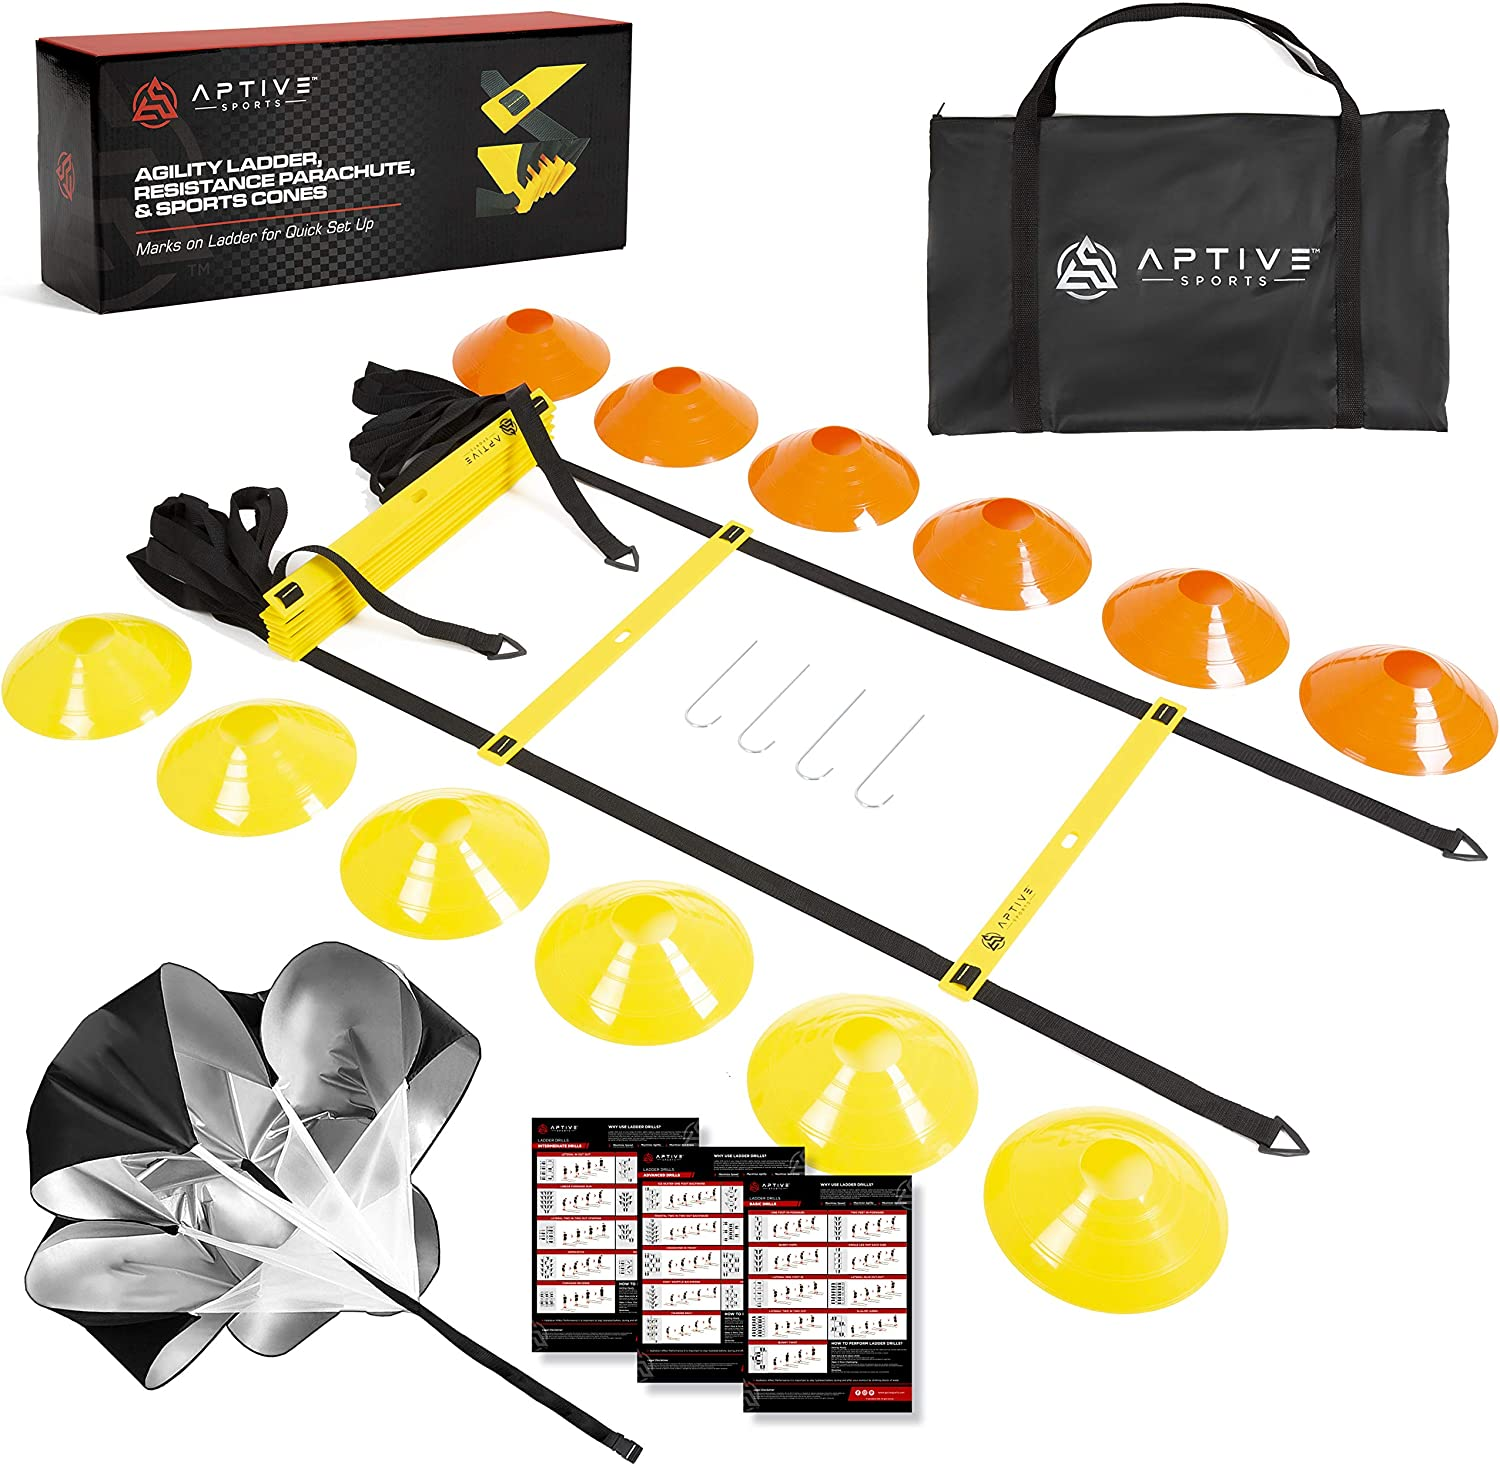 Speed and Agility Ladder Training Set - Speed Ladder, Parachute & Sport Cones Set - Maximize Coordination, Fitness, Quick Footwork - Soccer Training Equipment Kit with Carry Bag & E-Ladder Drills